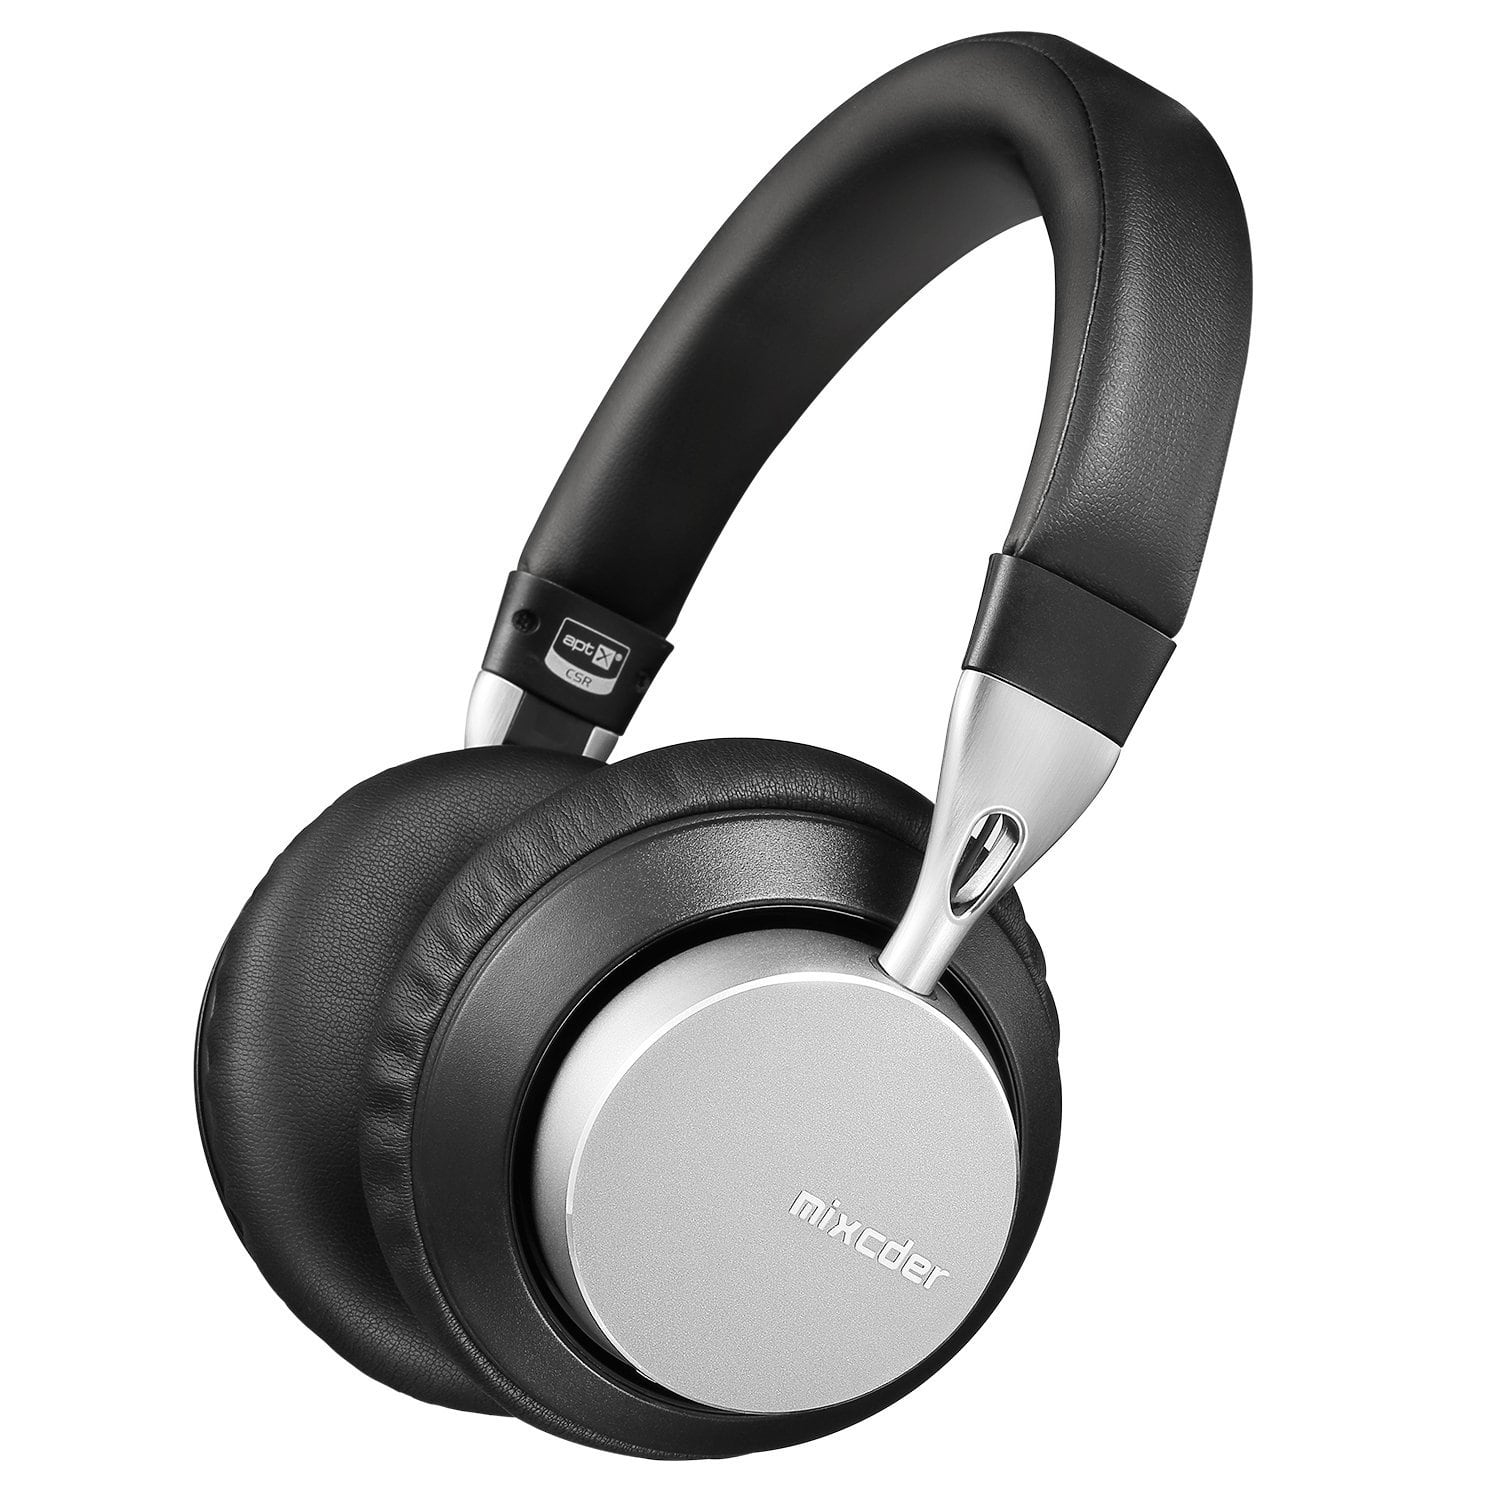 Mixcder MS301 Over ear Bluetooth headphone with Aptx-LL  $54.39 at Amazon + free prime shipping